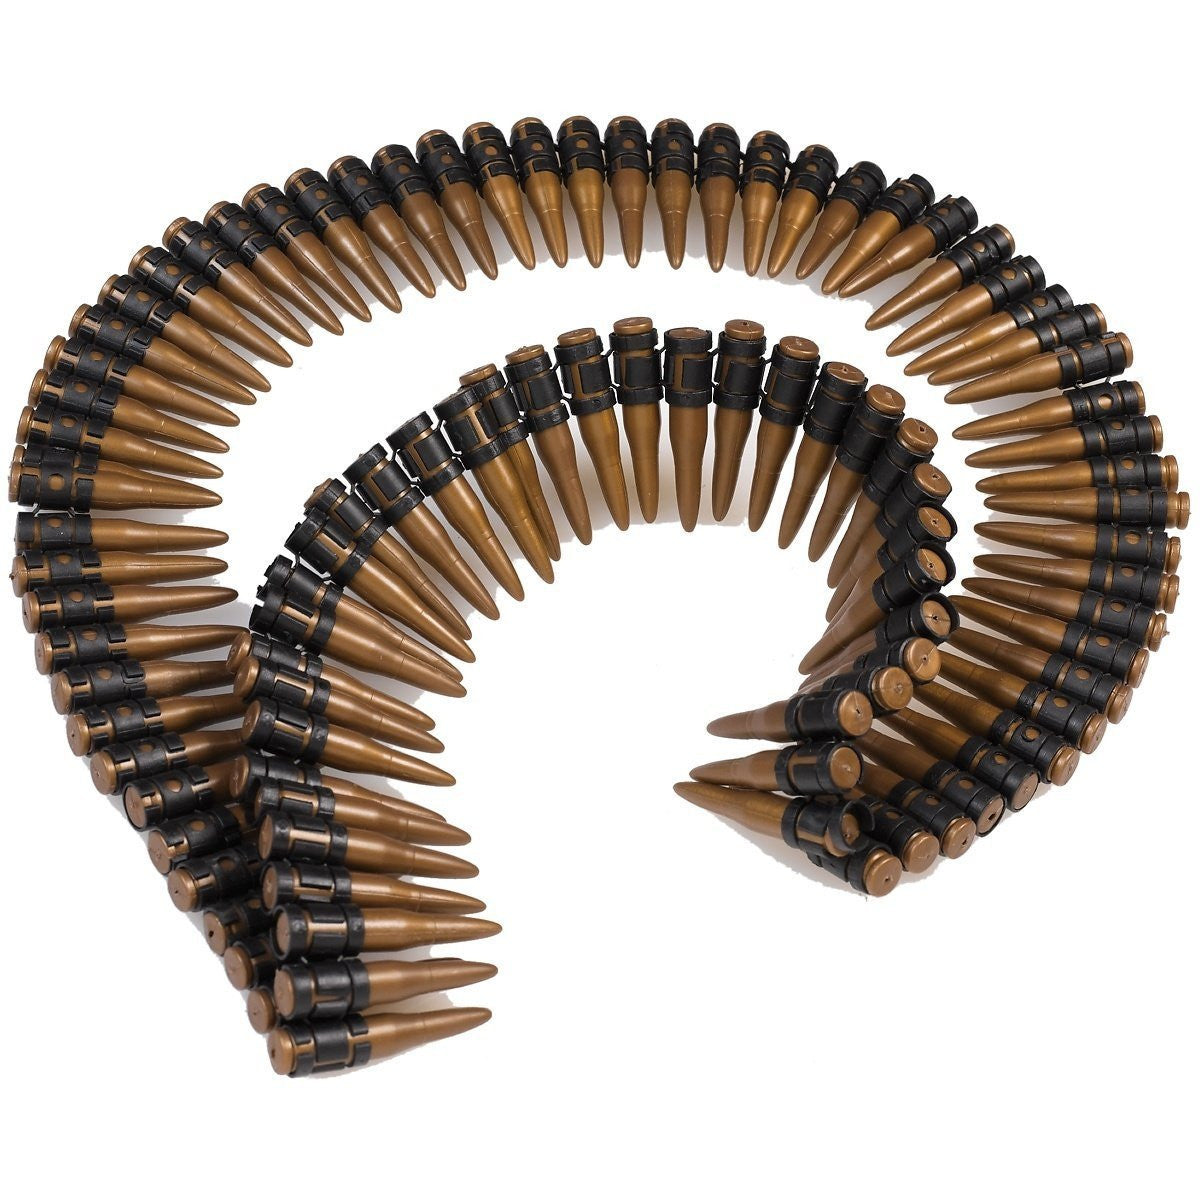 Weapon - Bullet Belt Gold with Removable Bullets